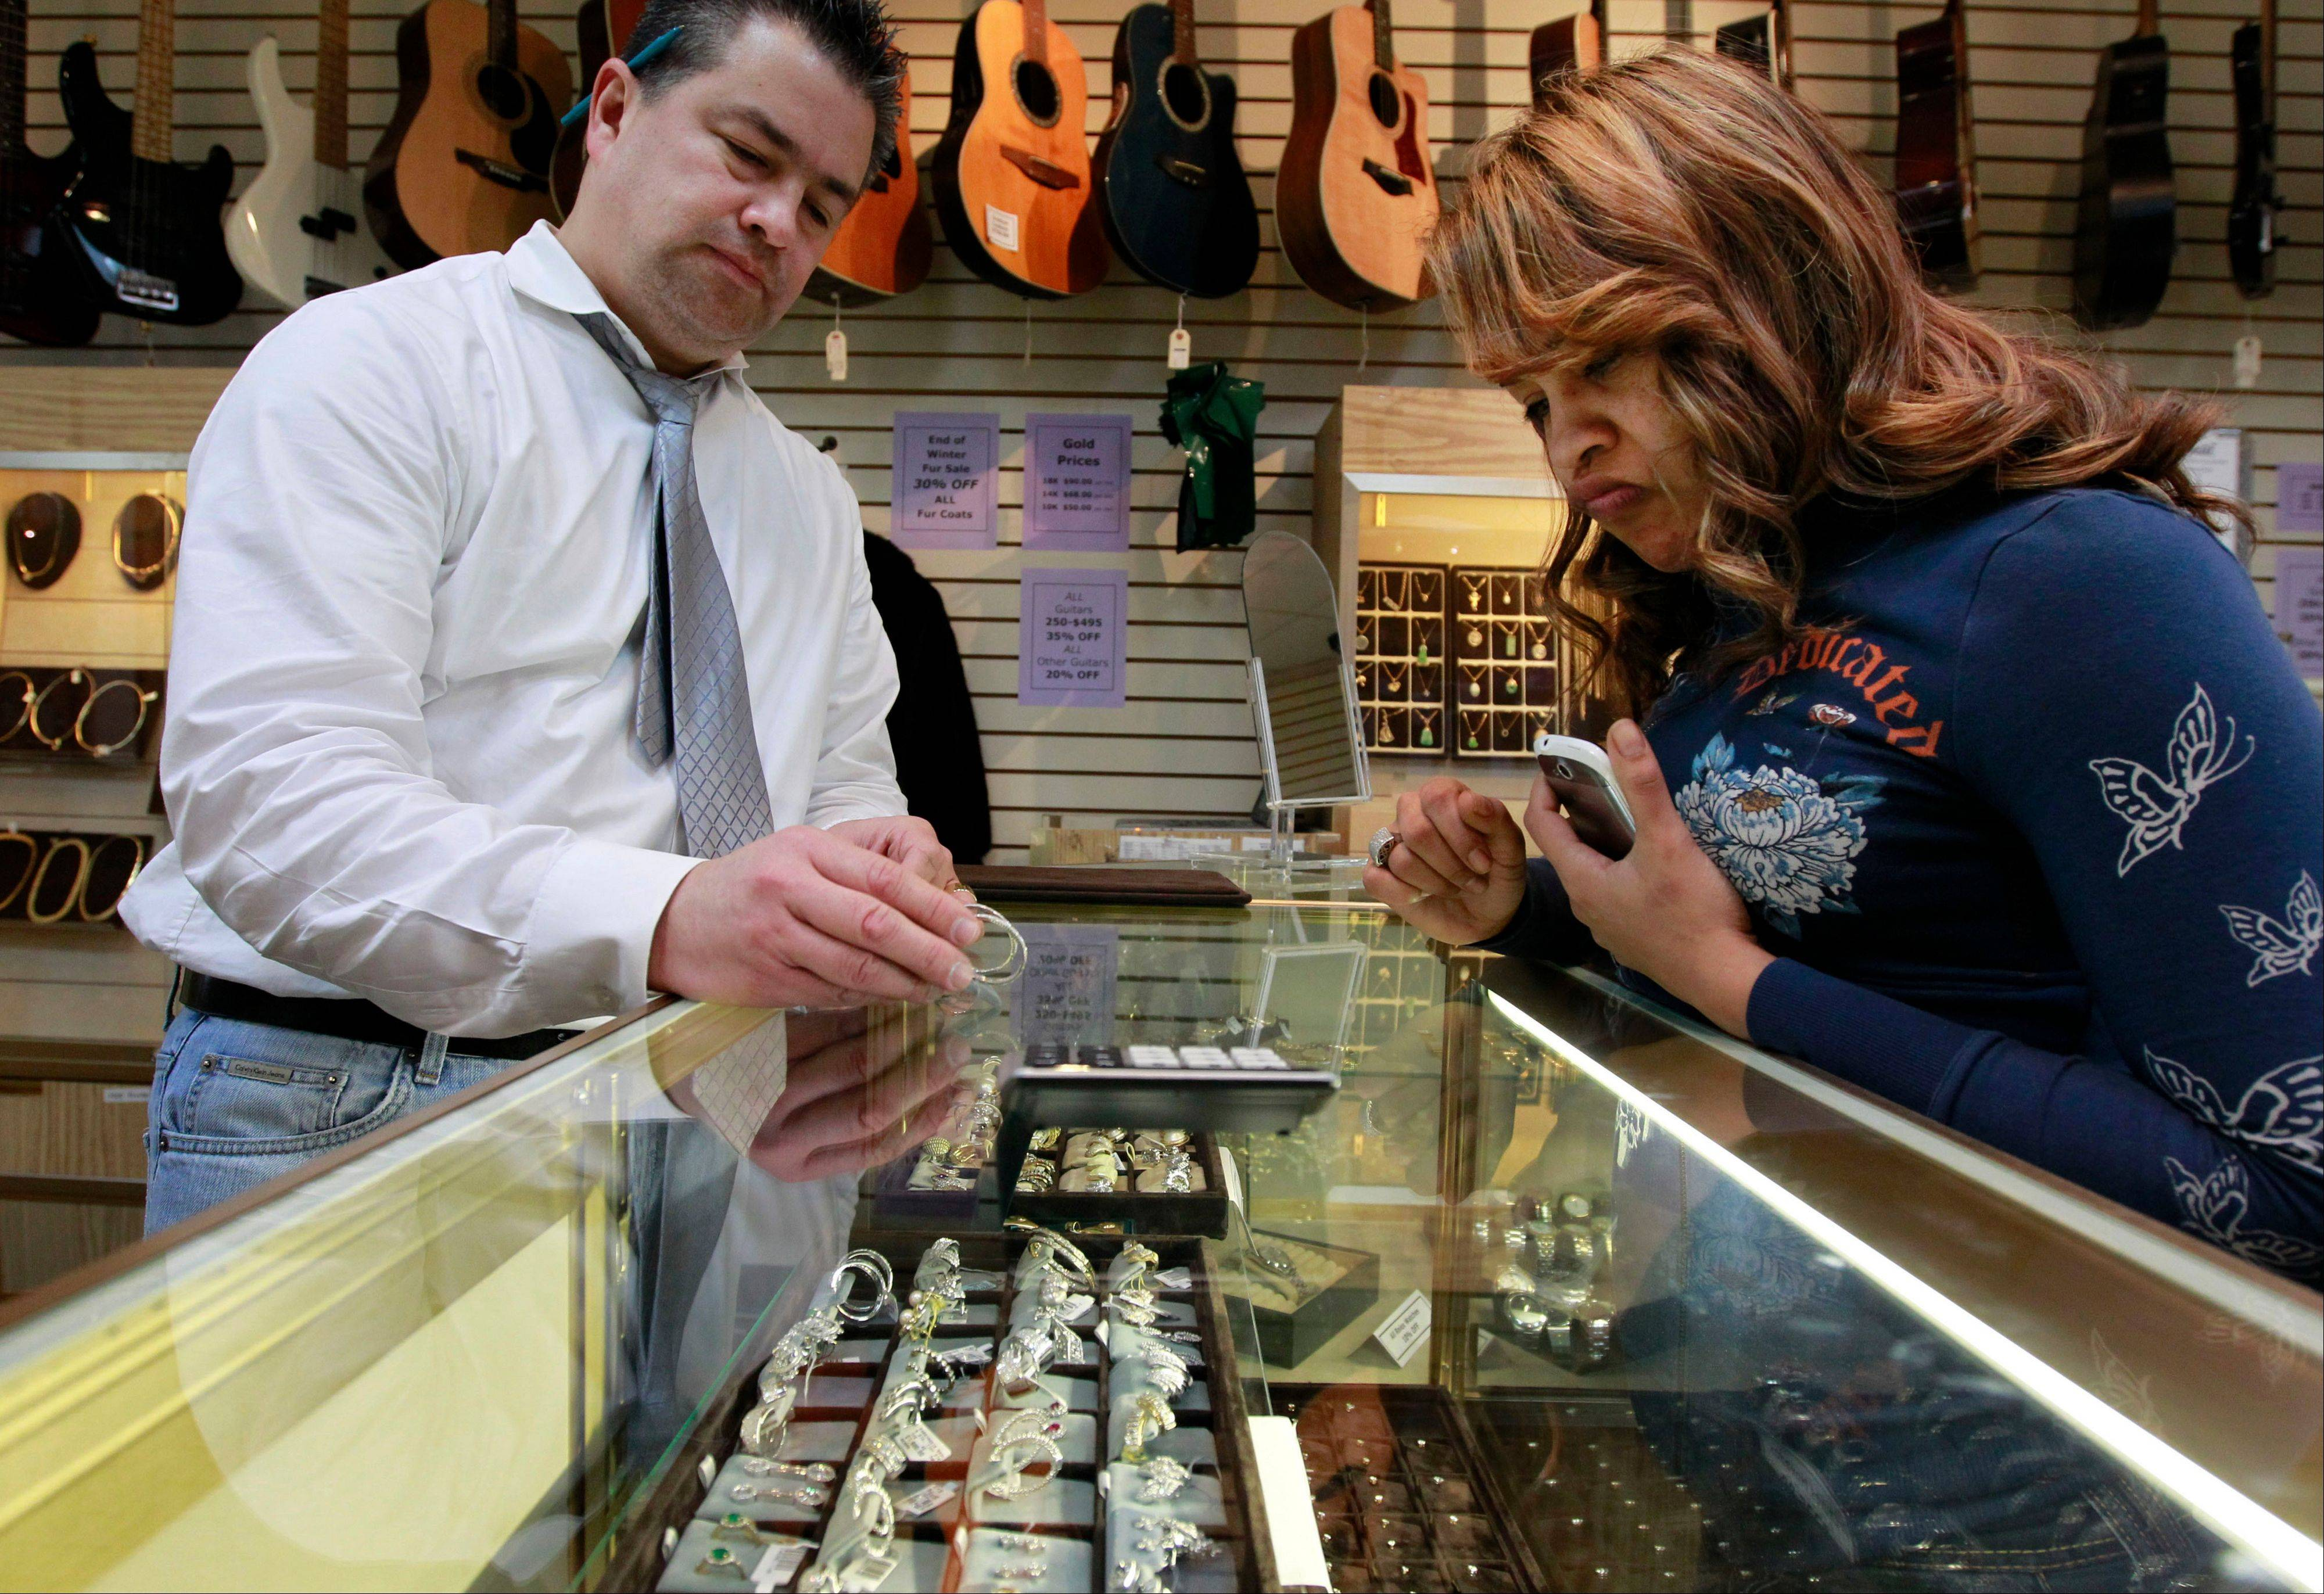 Loan officer and salesman Roy Knudsen, of Boston, left, displays earrings to Doreena Ruiz, of Framingham, Mass., as Ruiz shops at Suffolk Jewelers & Pawnbrokers, in Boston, Tuesday, Nov. 22, 2011. Pawnshop are emerging from the shadows. As access to credit remains tight, a growing number of borrowers are getting cash by pawning their jewelry, electronics and other valuables.